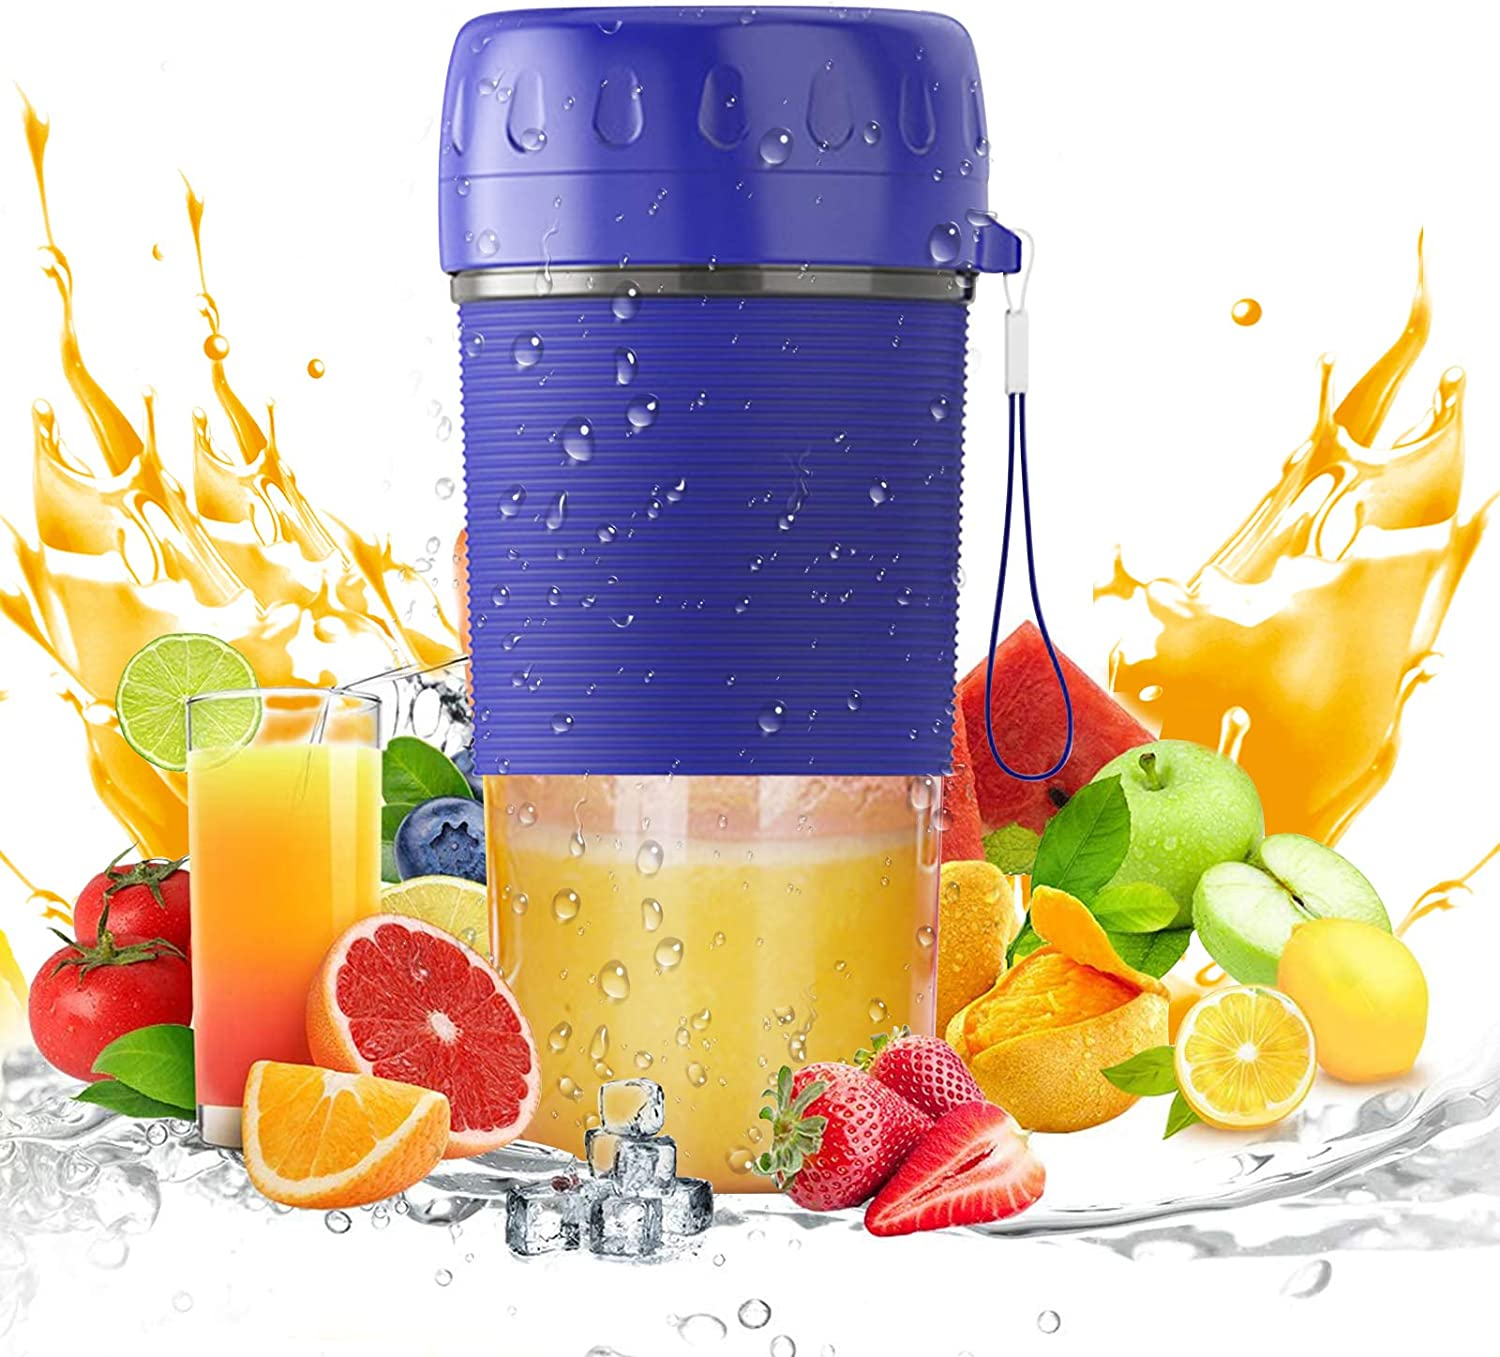 Portable Blender, Personal Size Blender USB Rechargeable for Smoothies and Shakes, Mini Jucier Cup Strong Power Cordless Blenders Fruit Mixer for Home Outdoor Picnic Travel Gym, BPA Free, 300ml, Blue